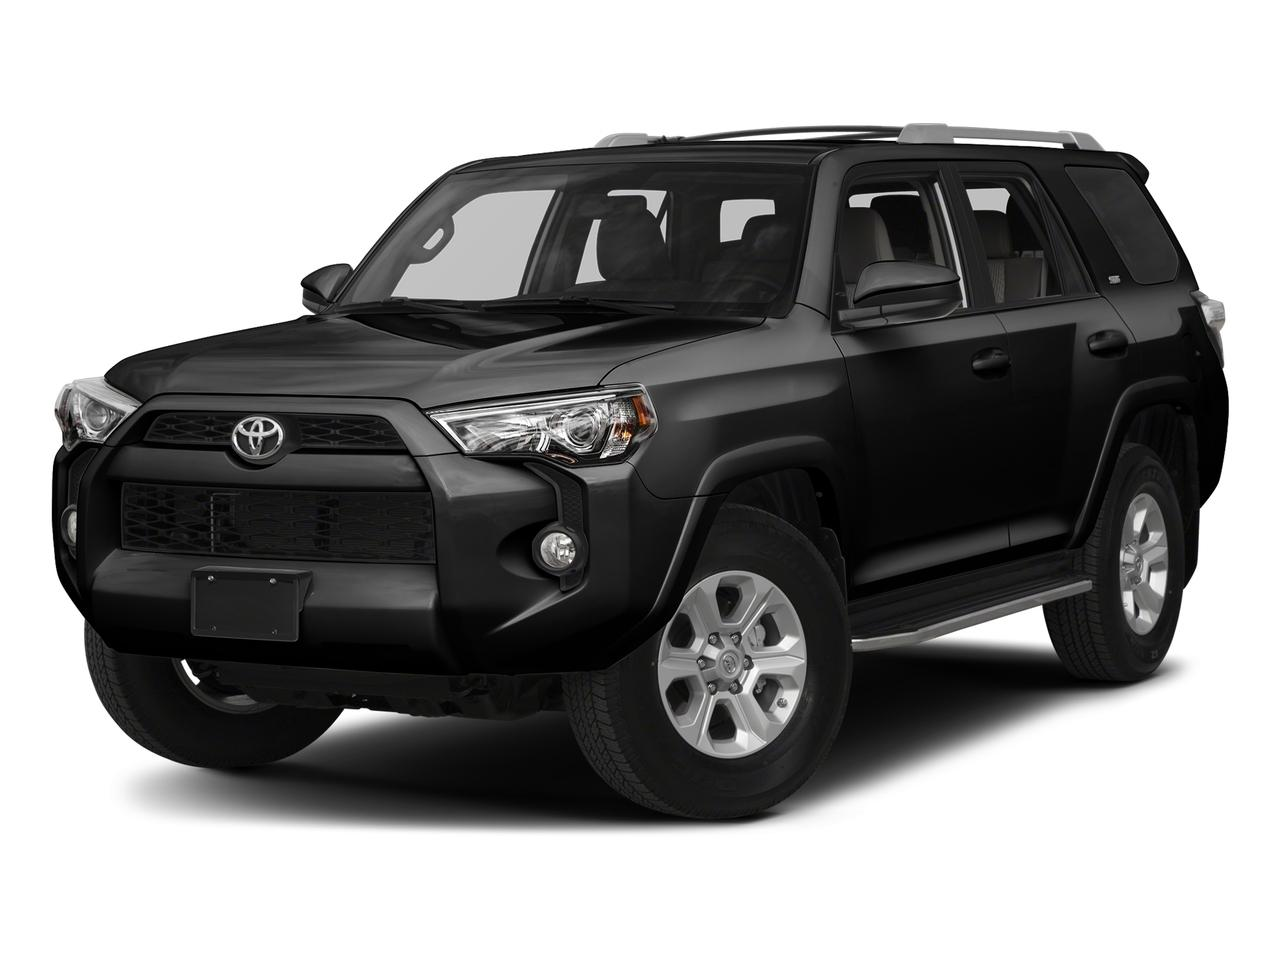 2017 Toyota 4Runner Vehicle Photo in Prince Frederick, MD 20678